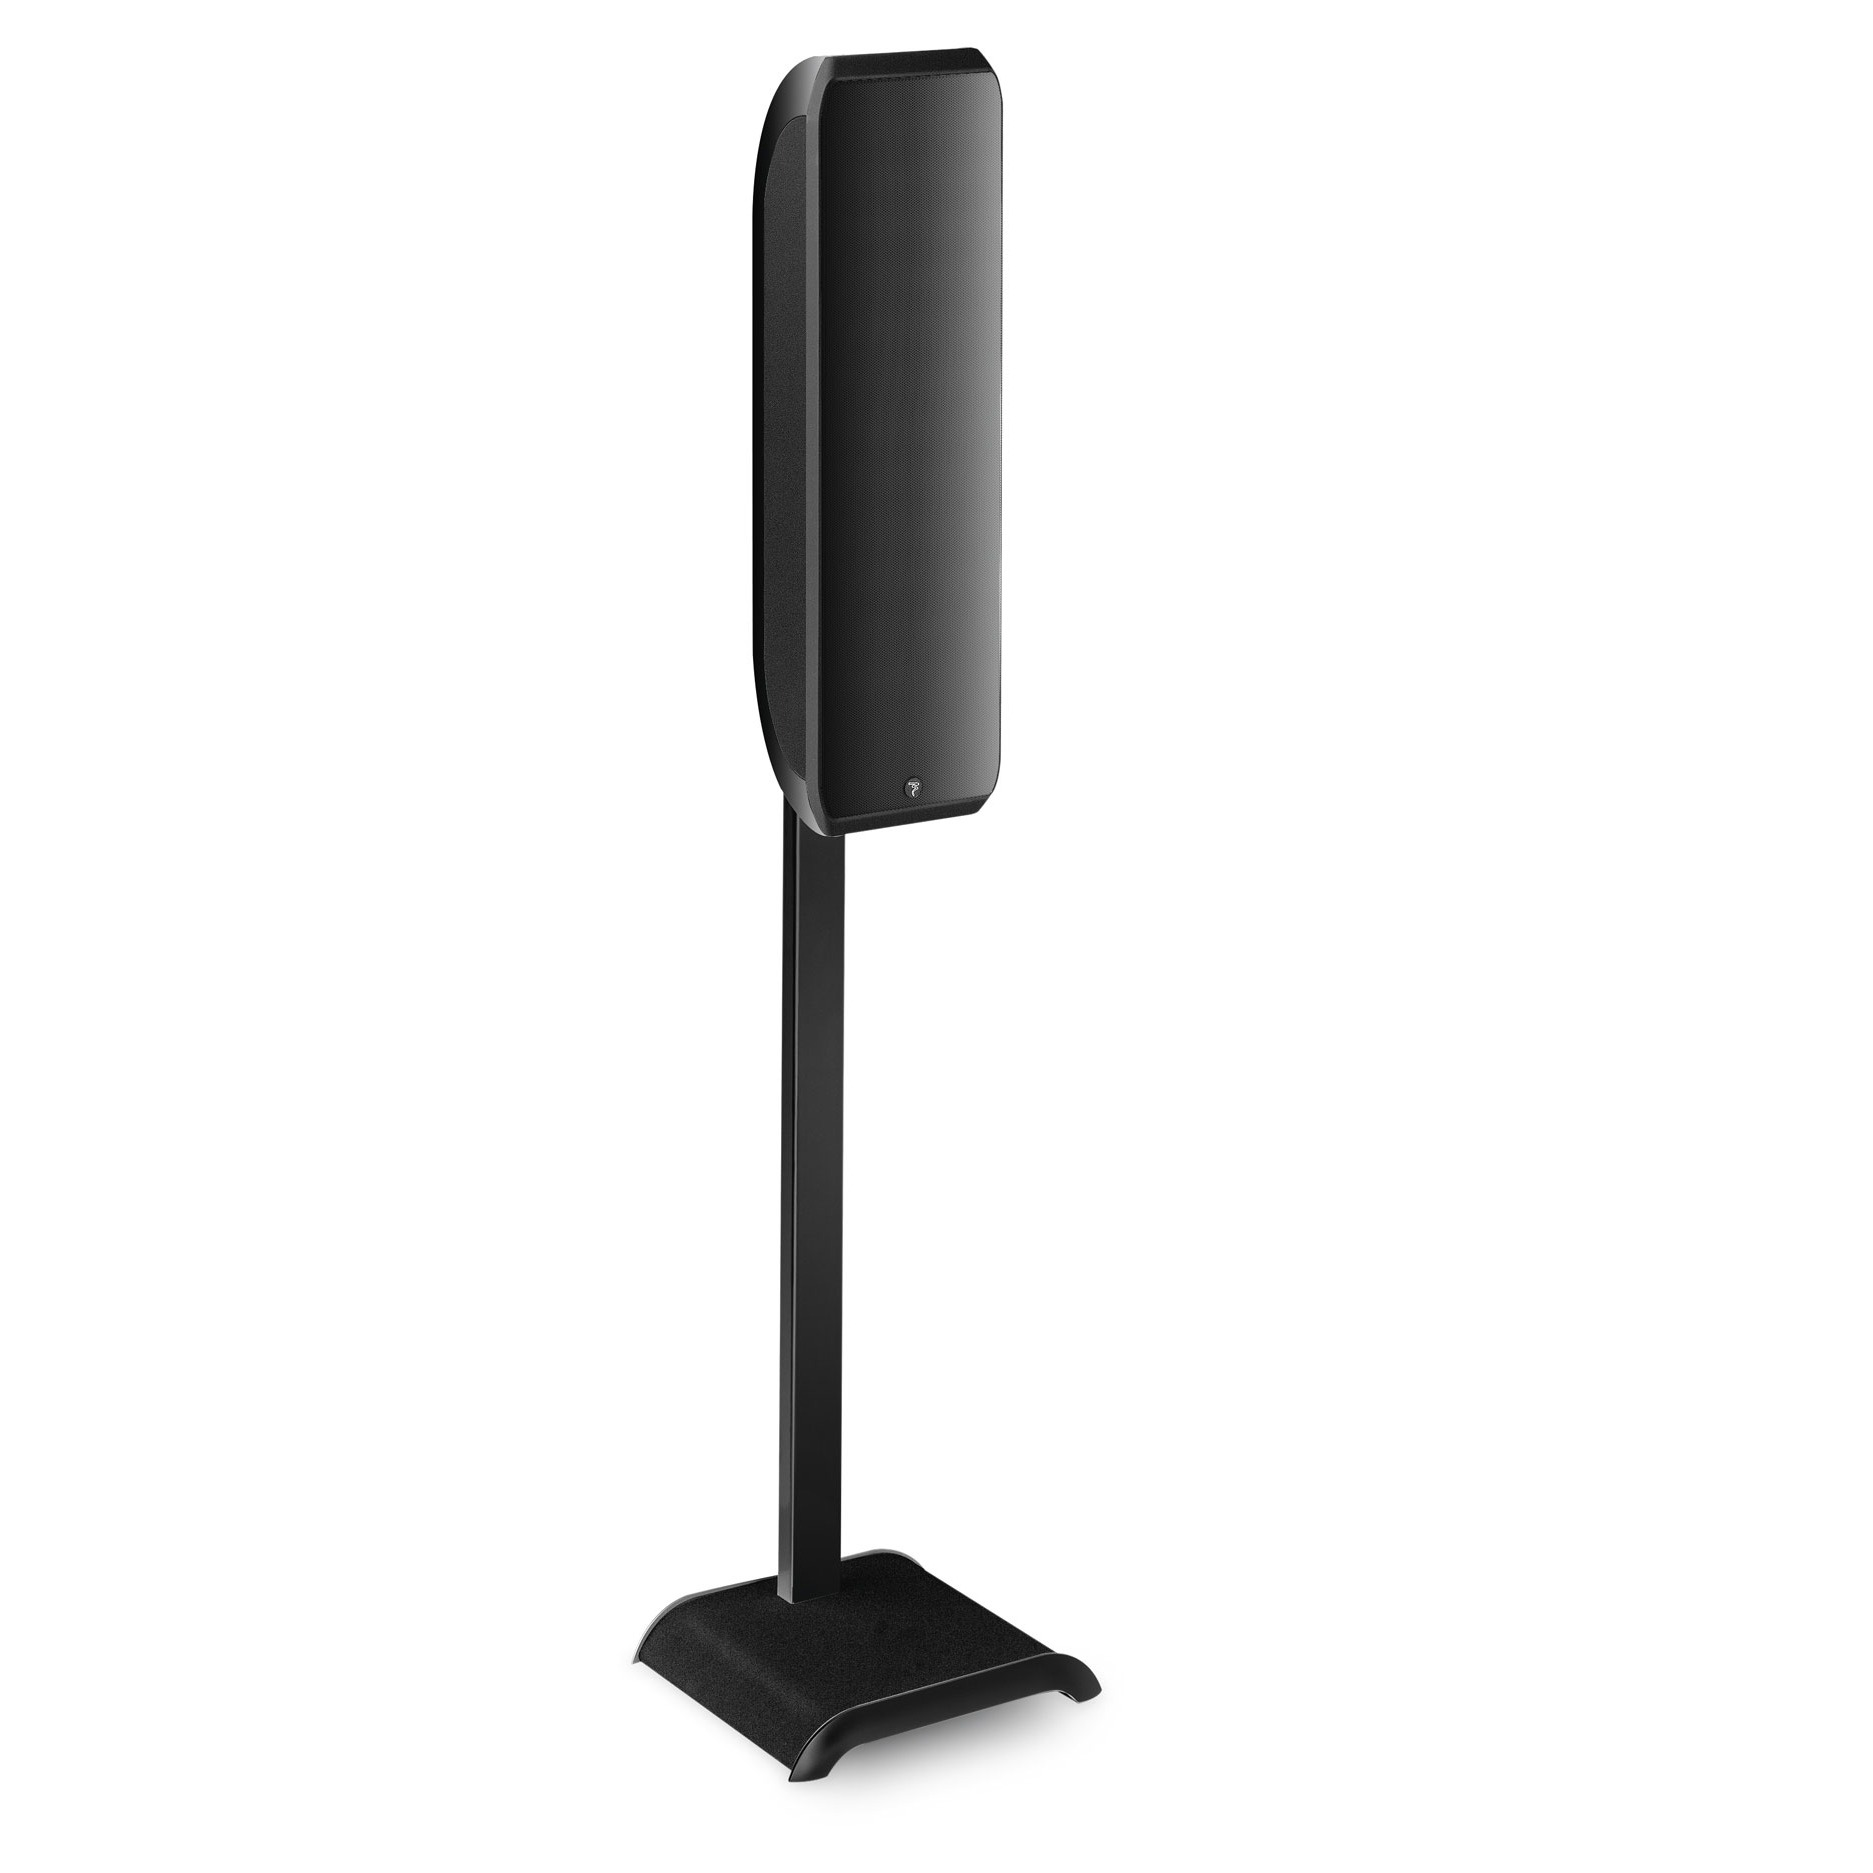 focal pied hop jet black par paire pied support enceinte focal sur ldlc. Black Bedroom Furniture Sets. Home Design Ideas